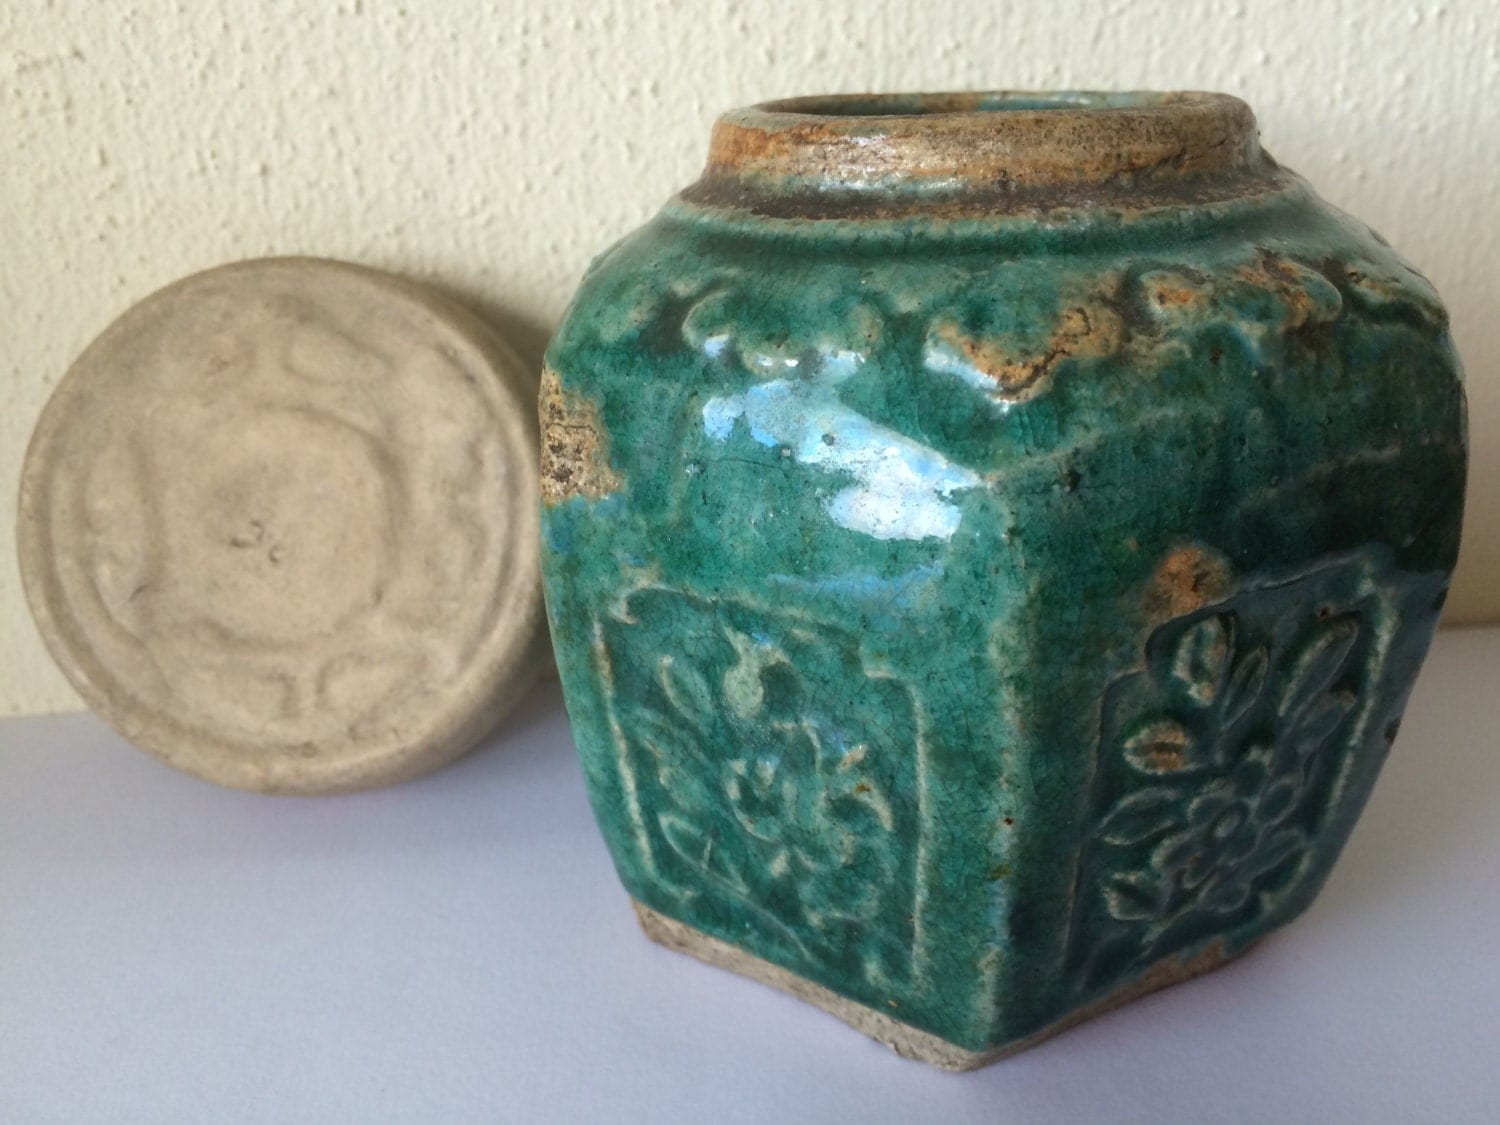 Chinese Ginger Jars Antique Chinese Pottery Ginger Jar Blue Green Glaze With